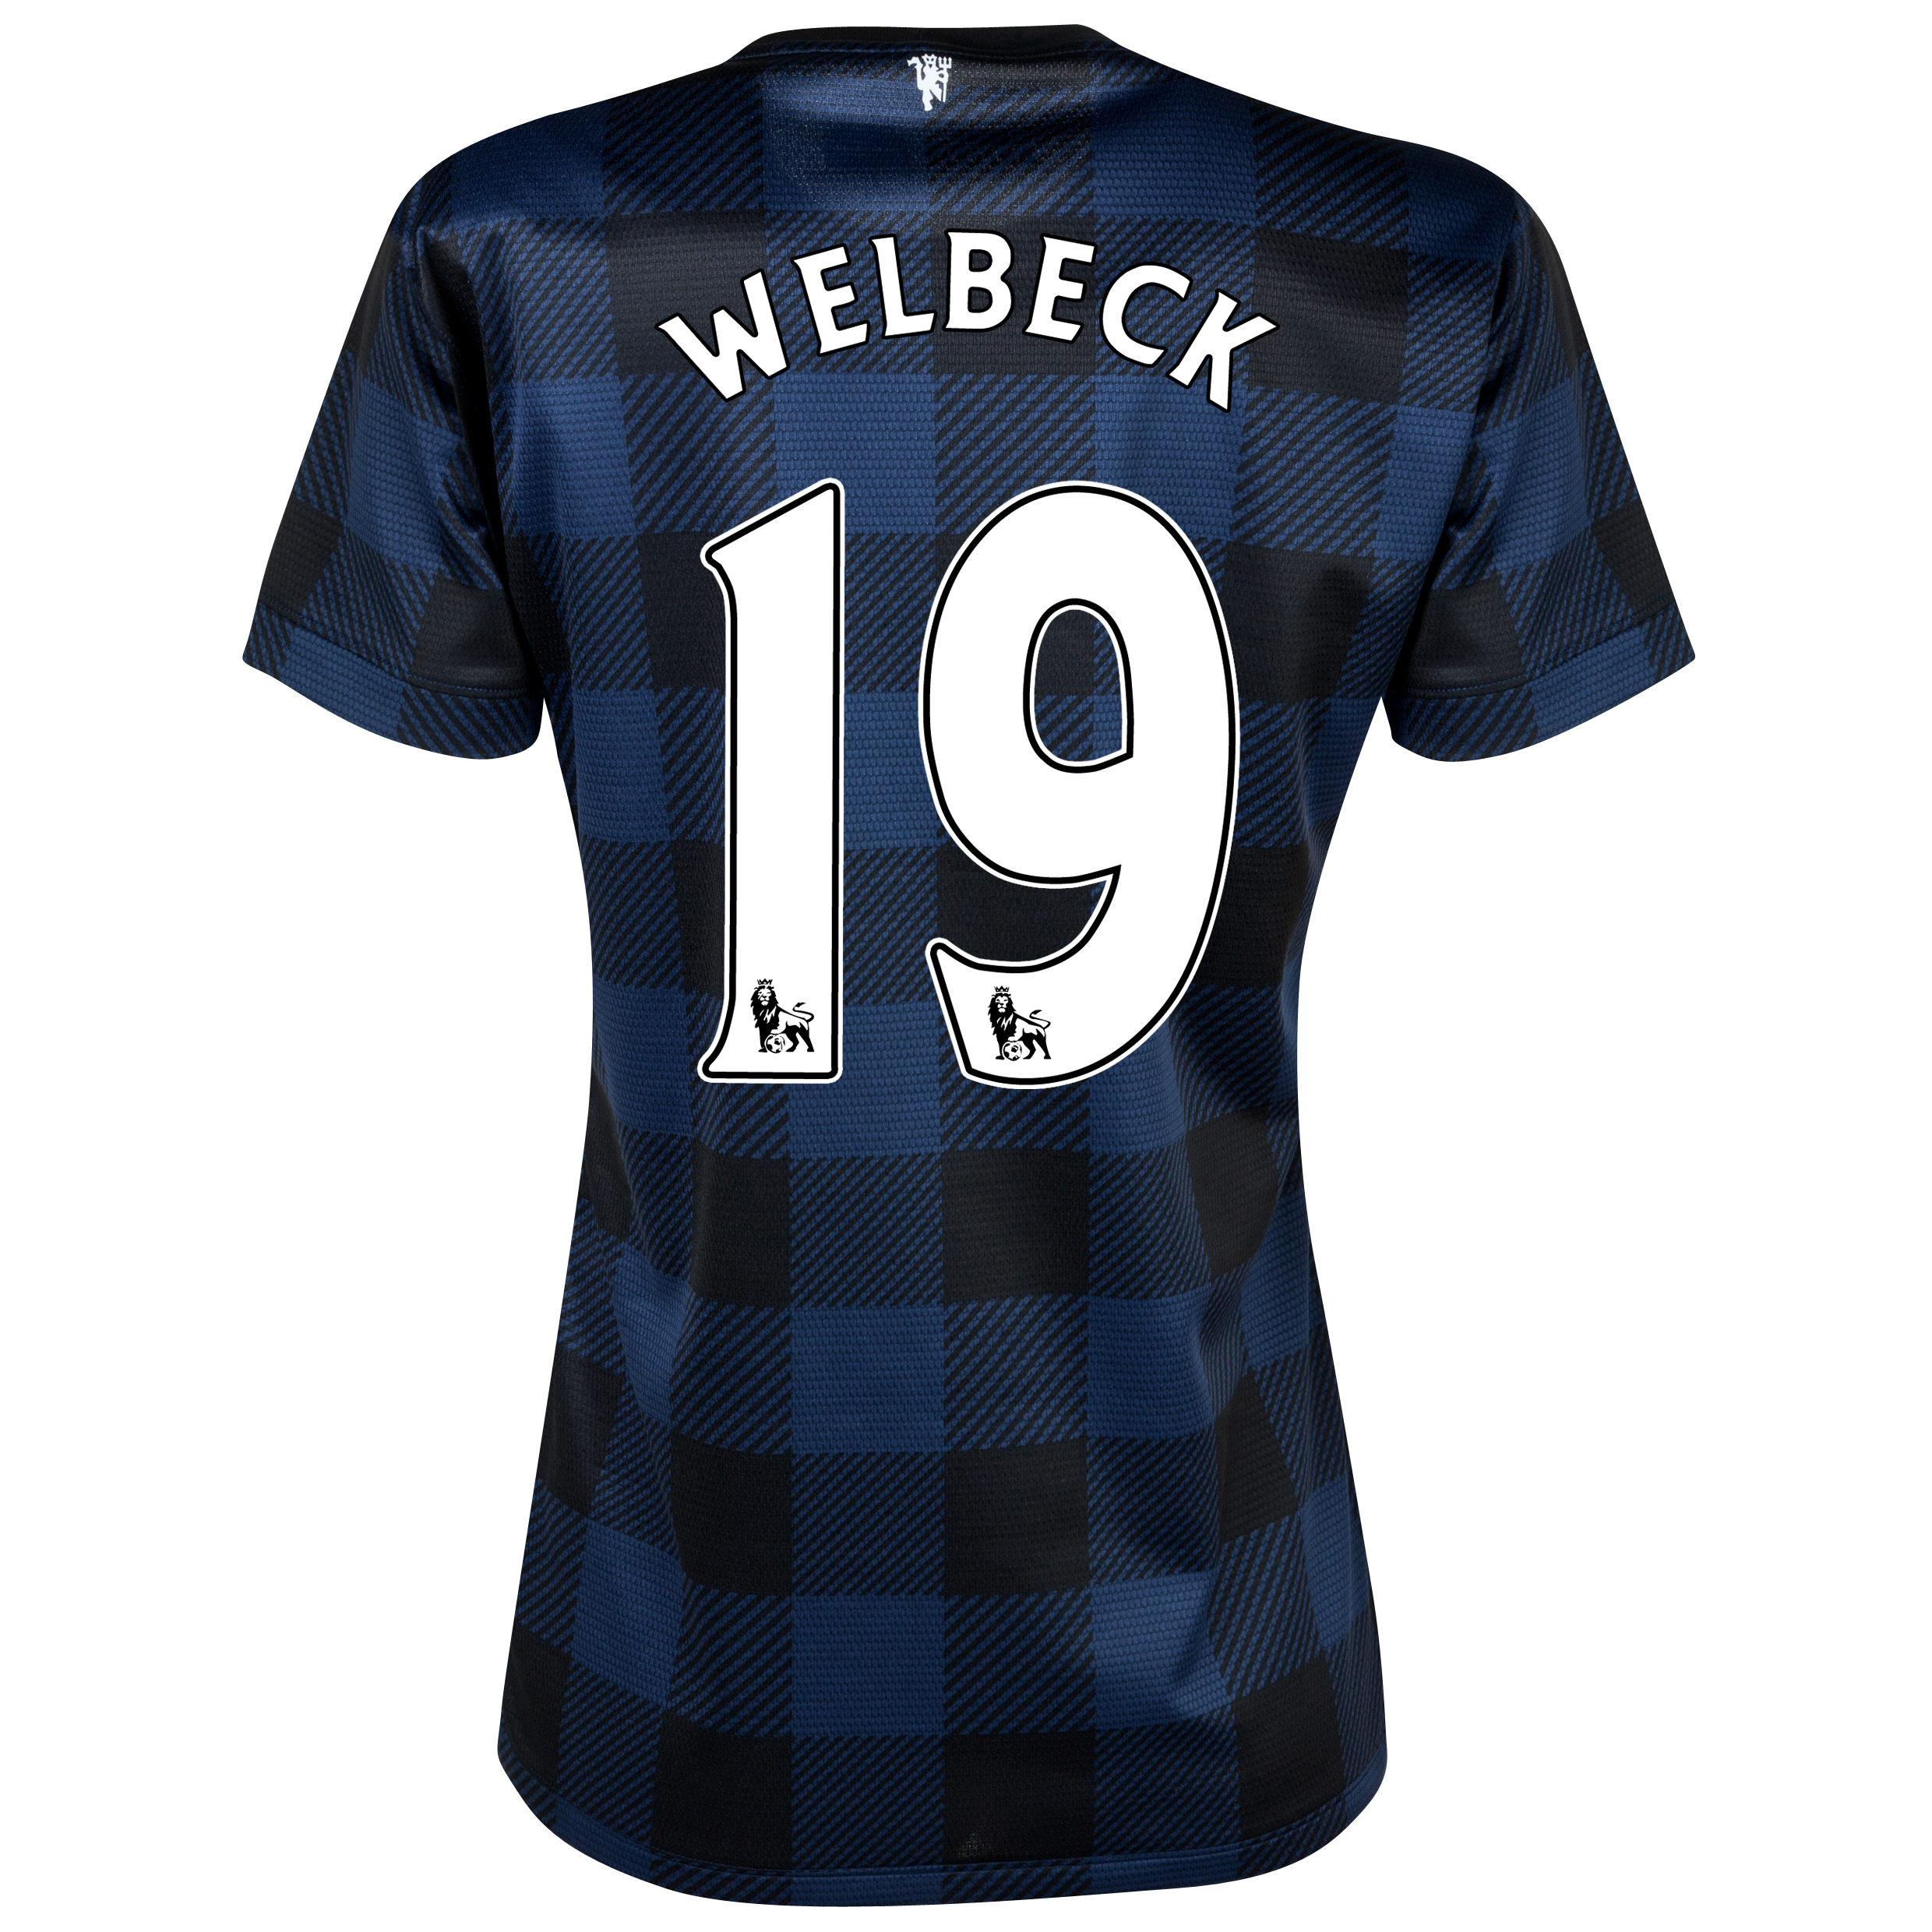 Manchester United Away Shirt 2013/14 - Womens with Welbeck 19 printing